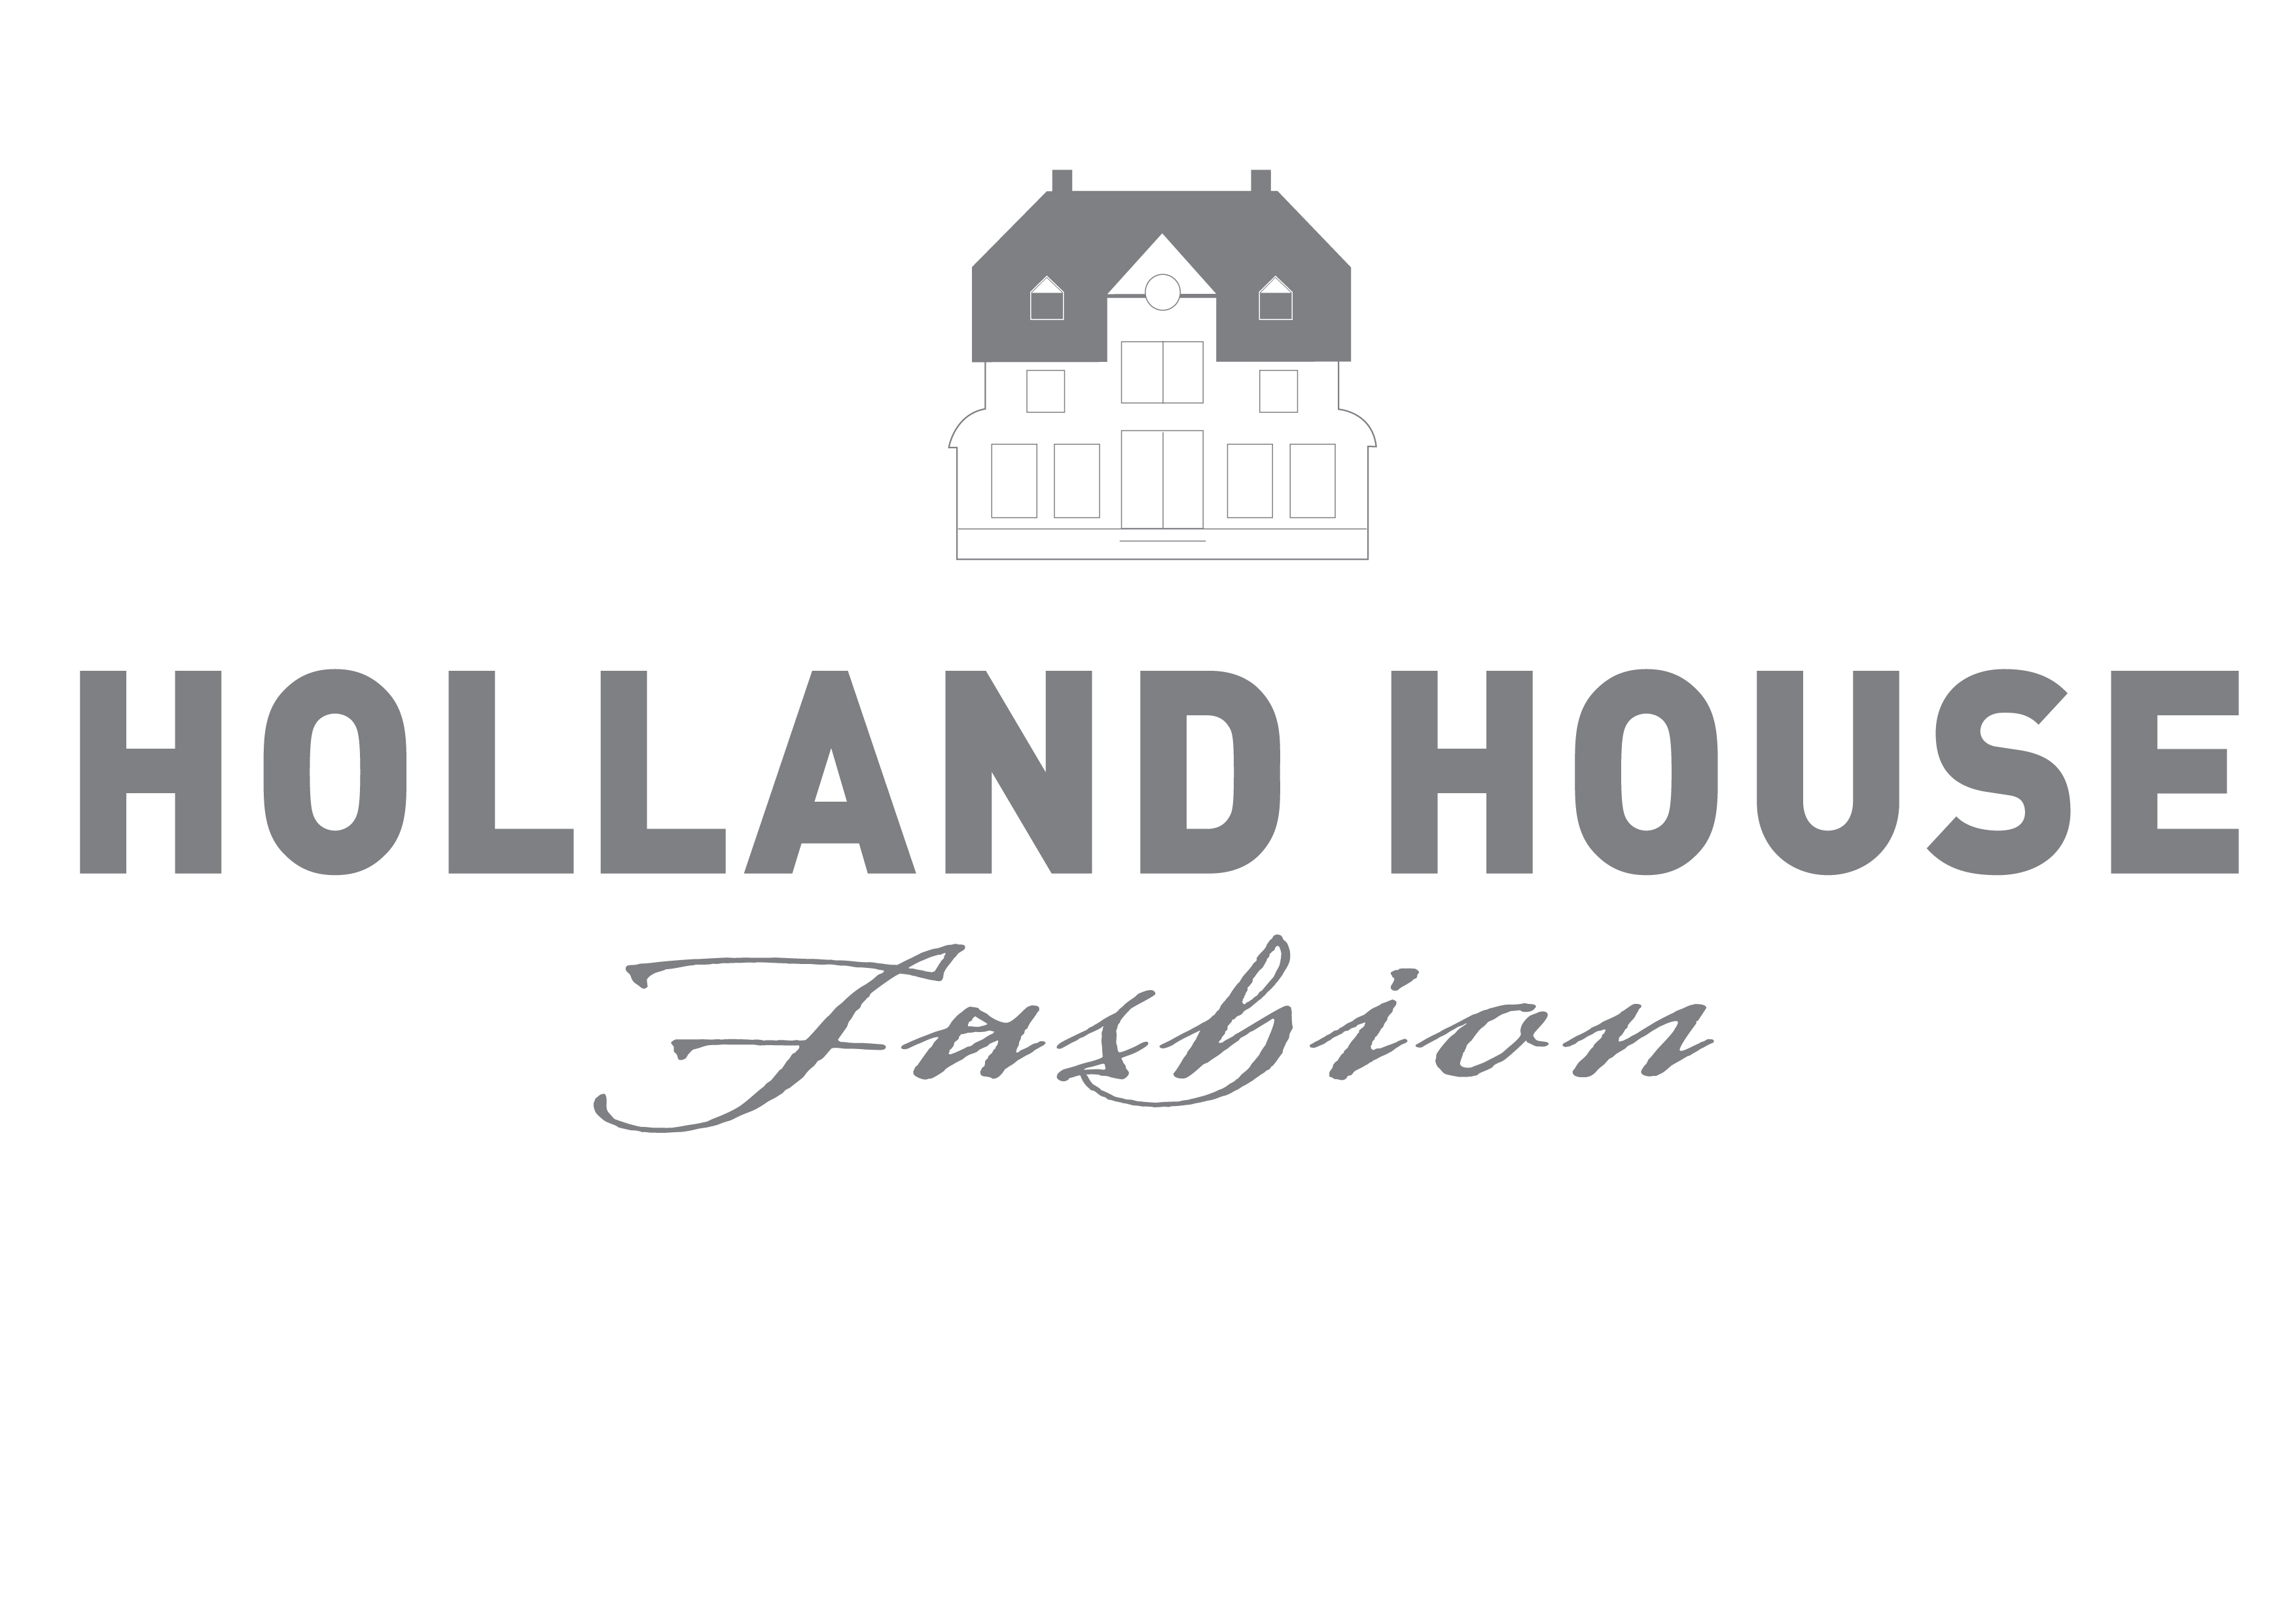 Holland house B.V